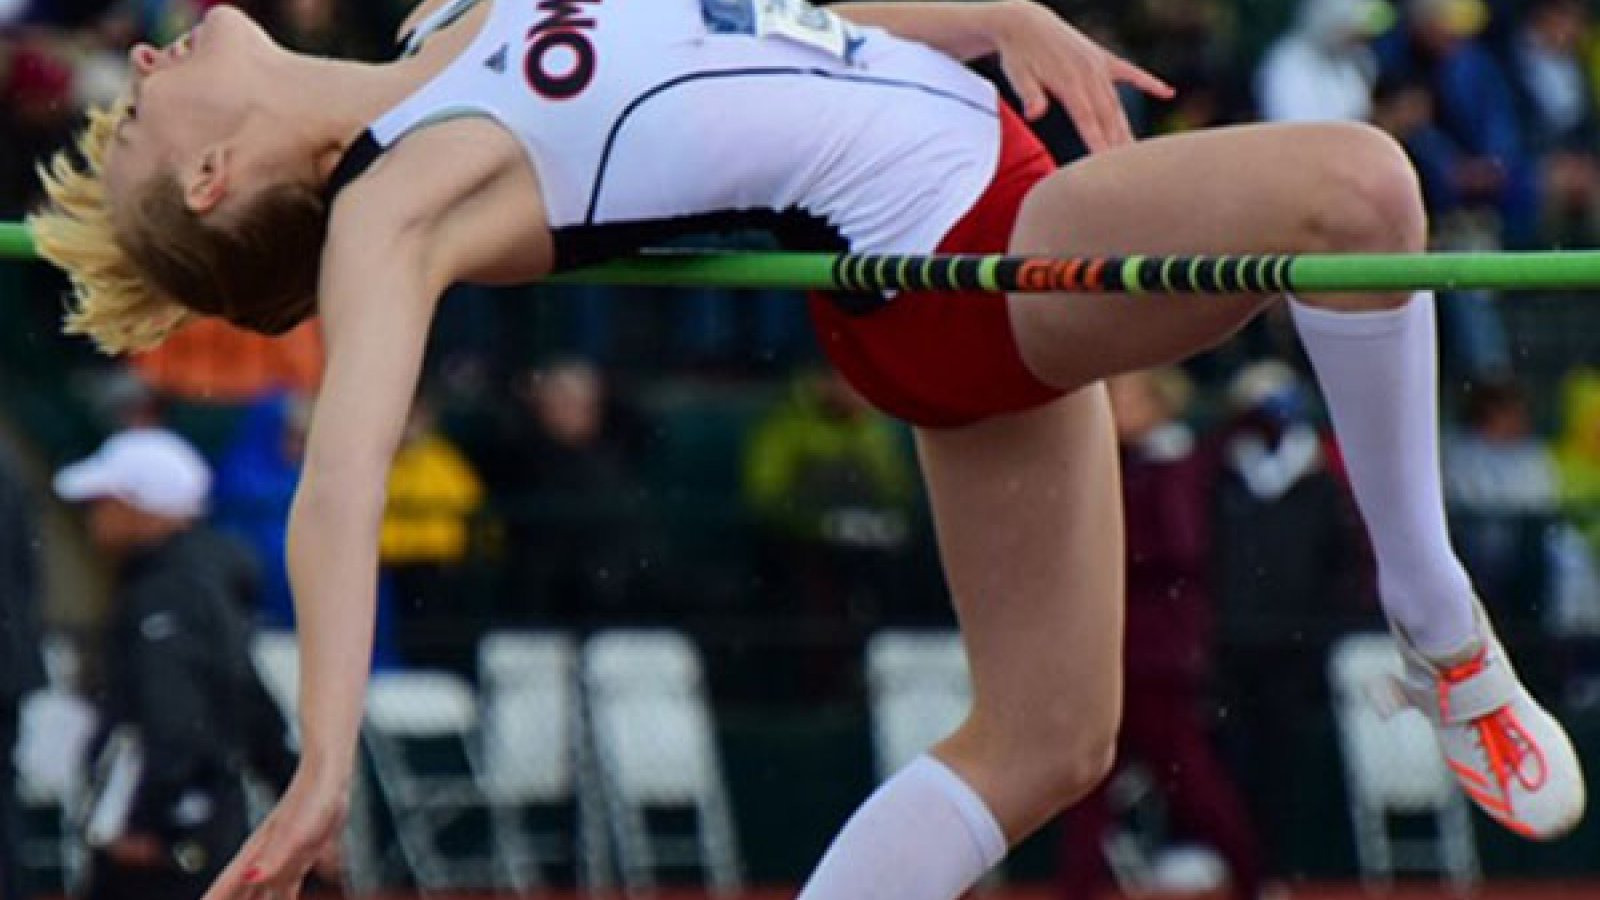 Stephanie Ahrens, an architectural engineering major in The Durham School at the University of Nebraska-Lincoln, became the first Division I track and field All-American for University of Nebraska Omaha by tying for eighth place in the high jump at the NCAA Outdoor Track and Field Championships in Eugene, Oregon.